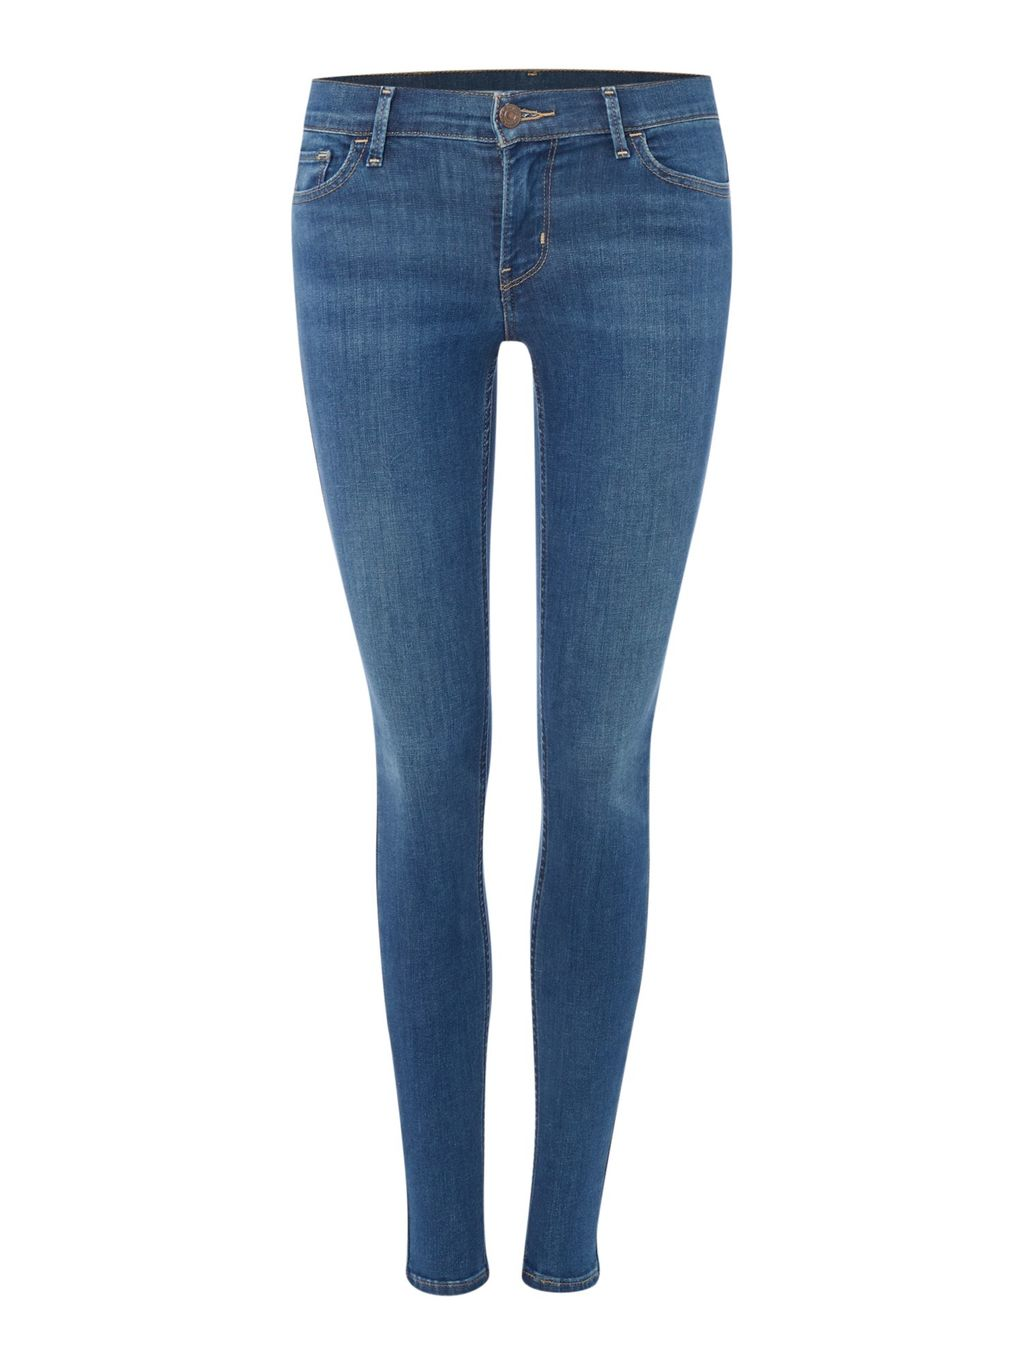 710 Innovation Super Skinny Jean In Indigo Mist, Denim Mid Wash - style: skinny leg; length: standard; pattern: plain; pocket detail: traditional 5 pocket; waist: mid/regular rise; predominant colour: denim; occasions: casual; fibres: cotton - stretch; texture group: denim; pattern type: fabric; season: a/w 2015; wardrobe: basic